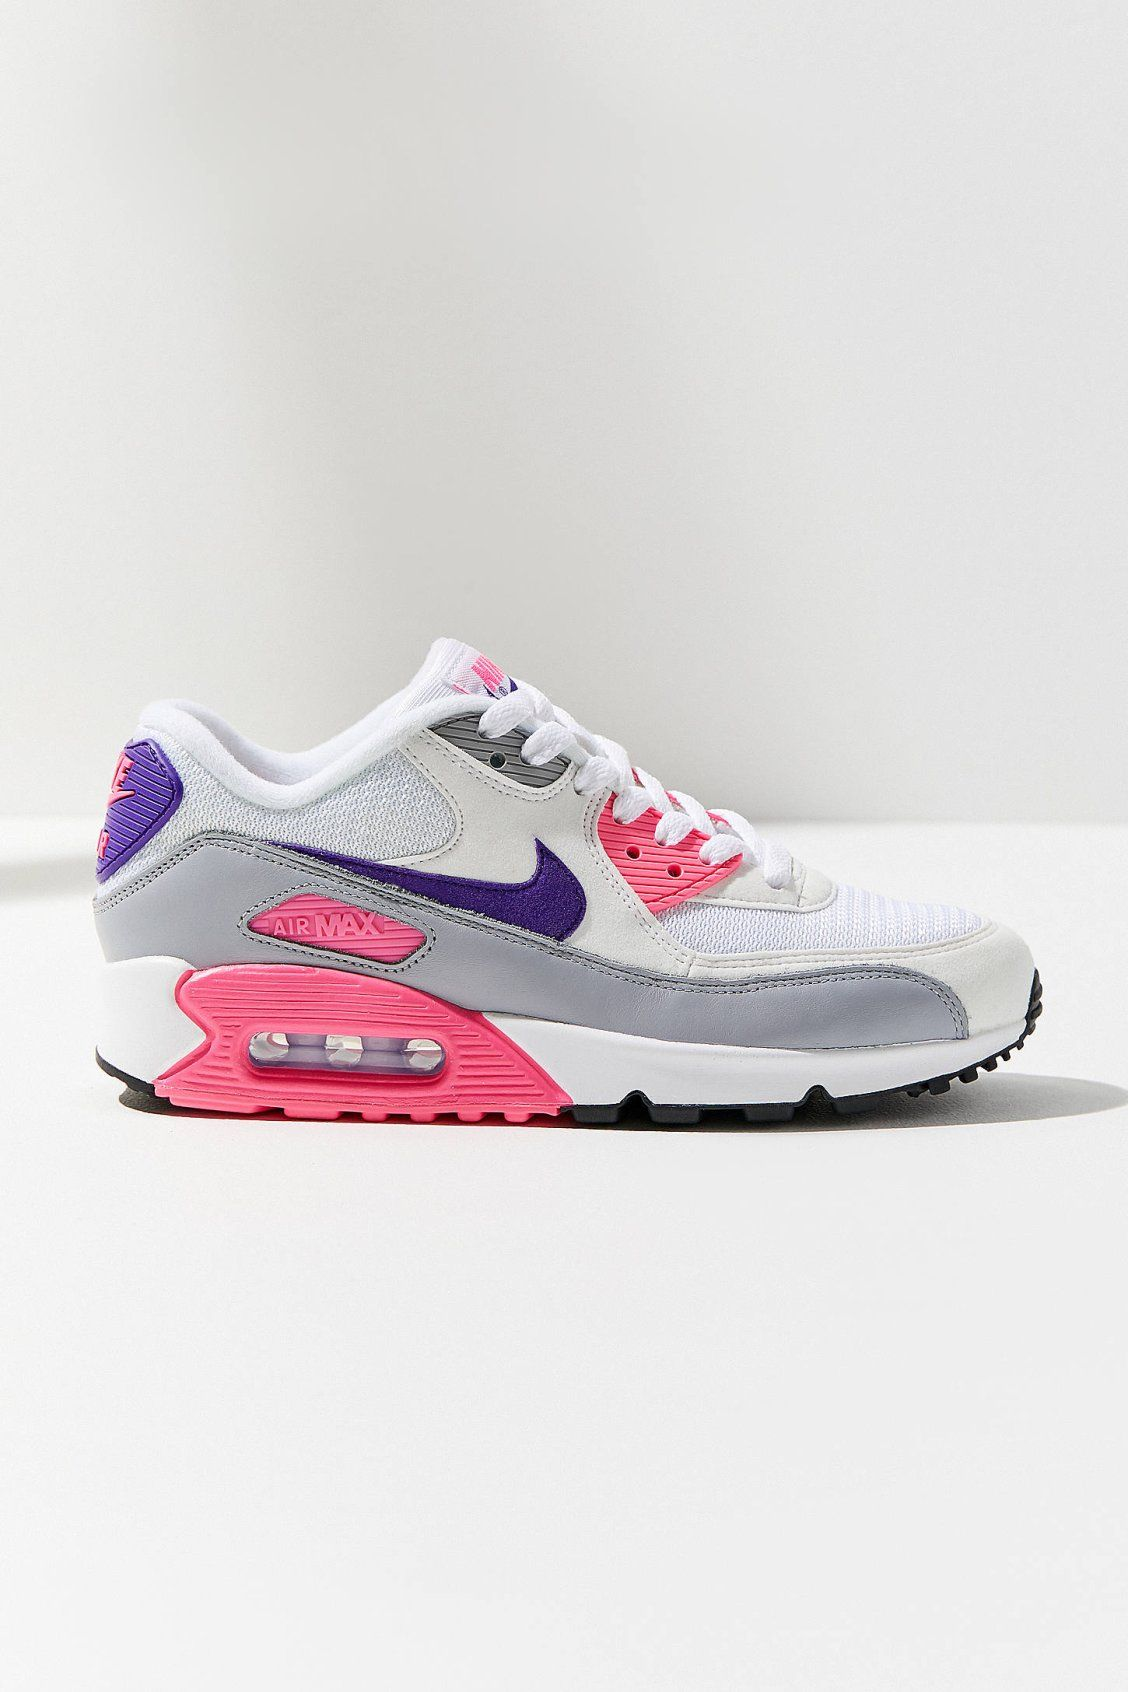 Nike Air Max 90 Colorblock Sneaker | Sneakers fashion